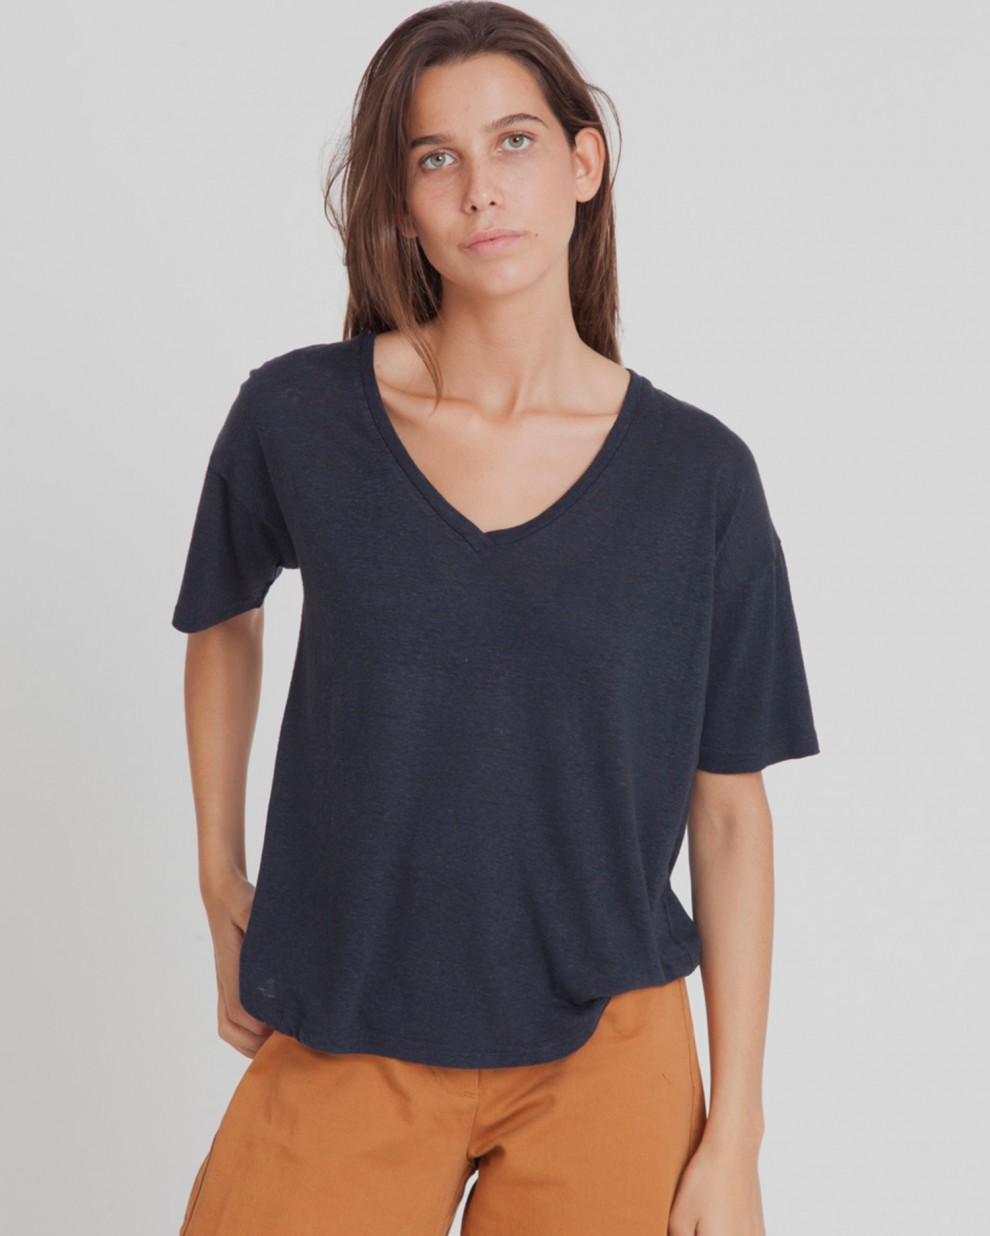 Camiseta Dark Blue Hemp V-neck